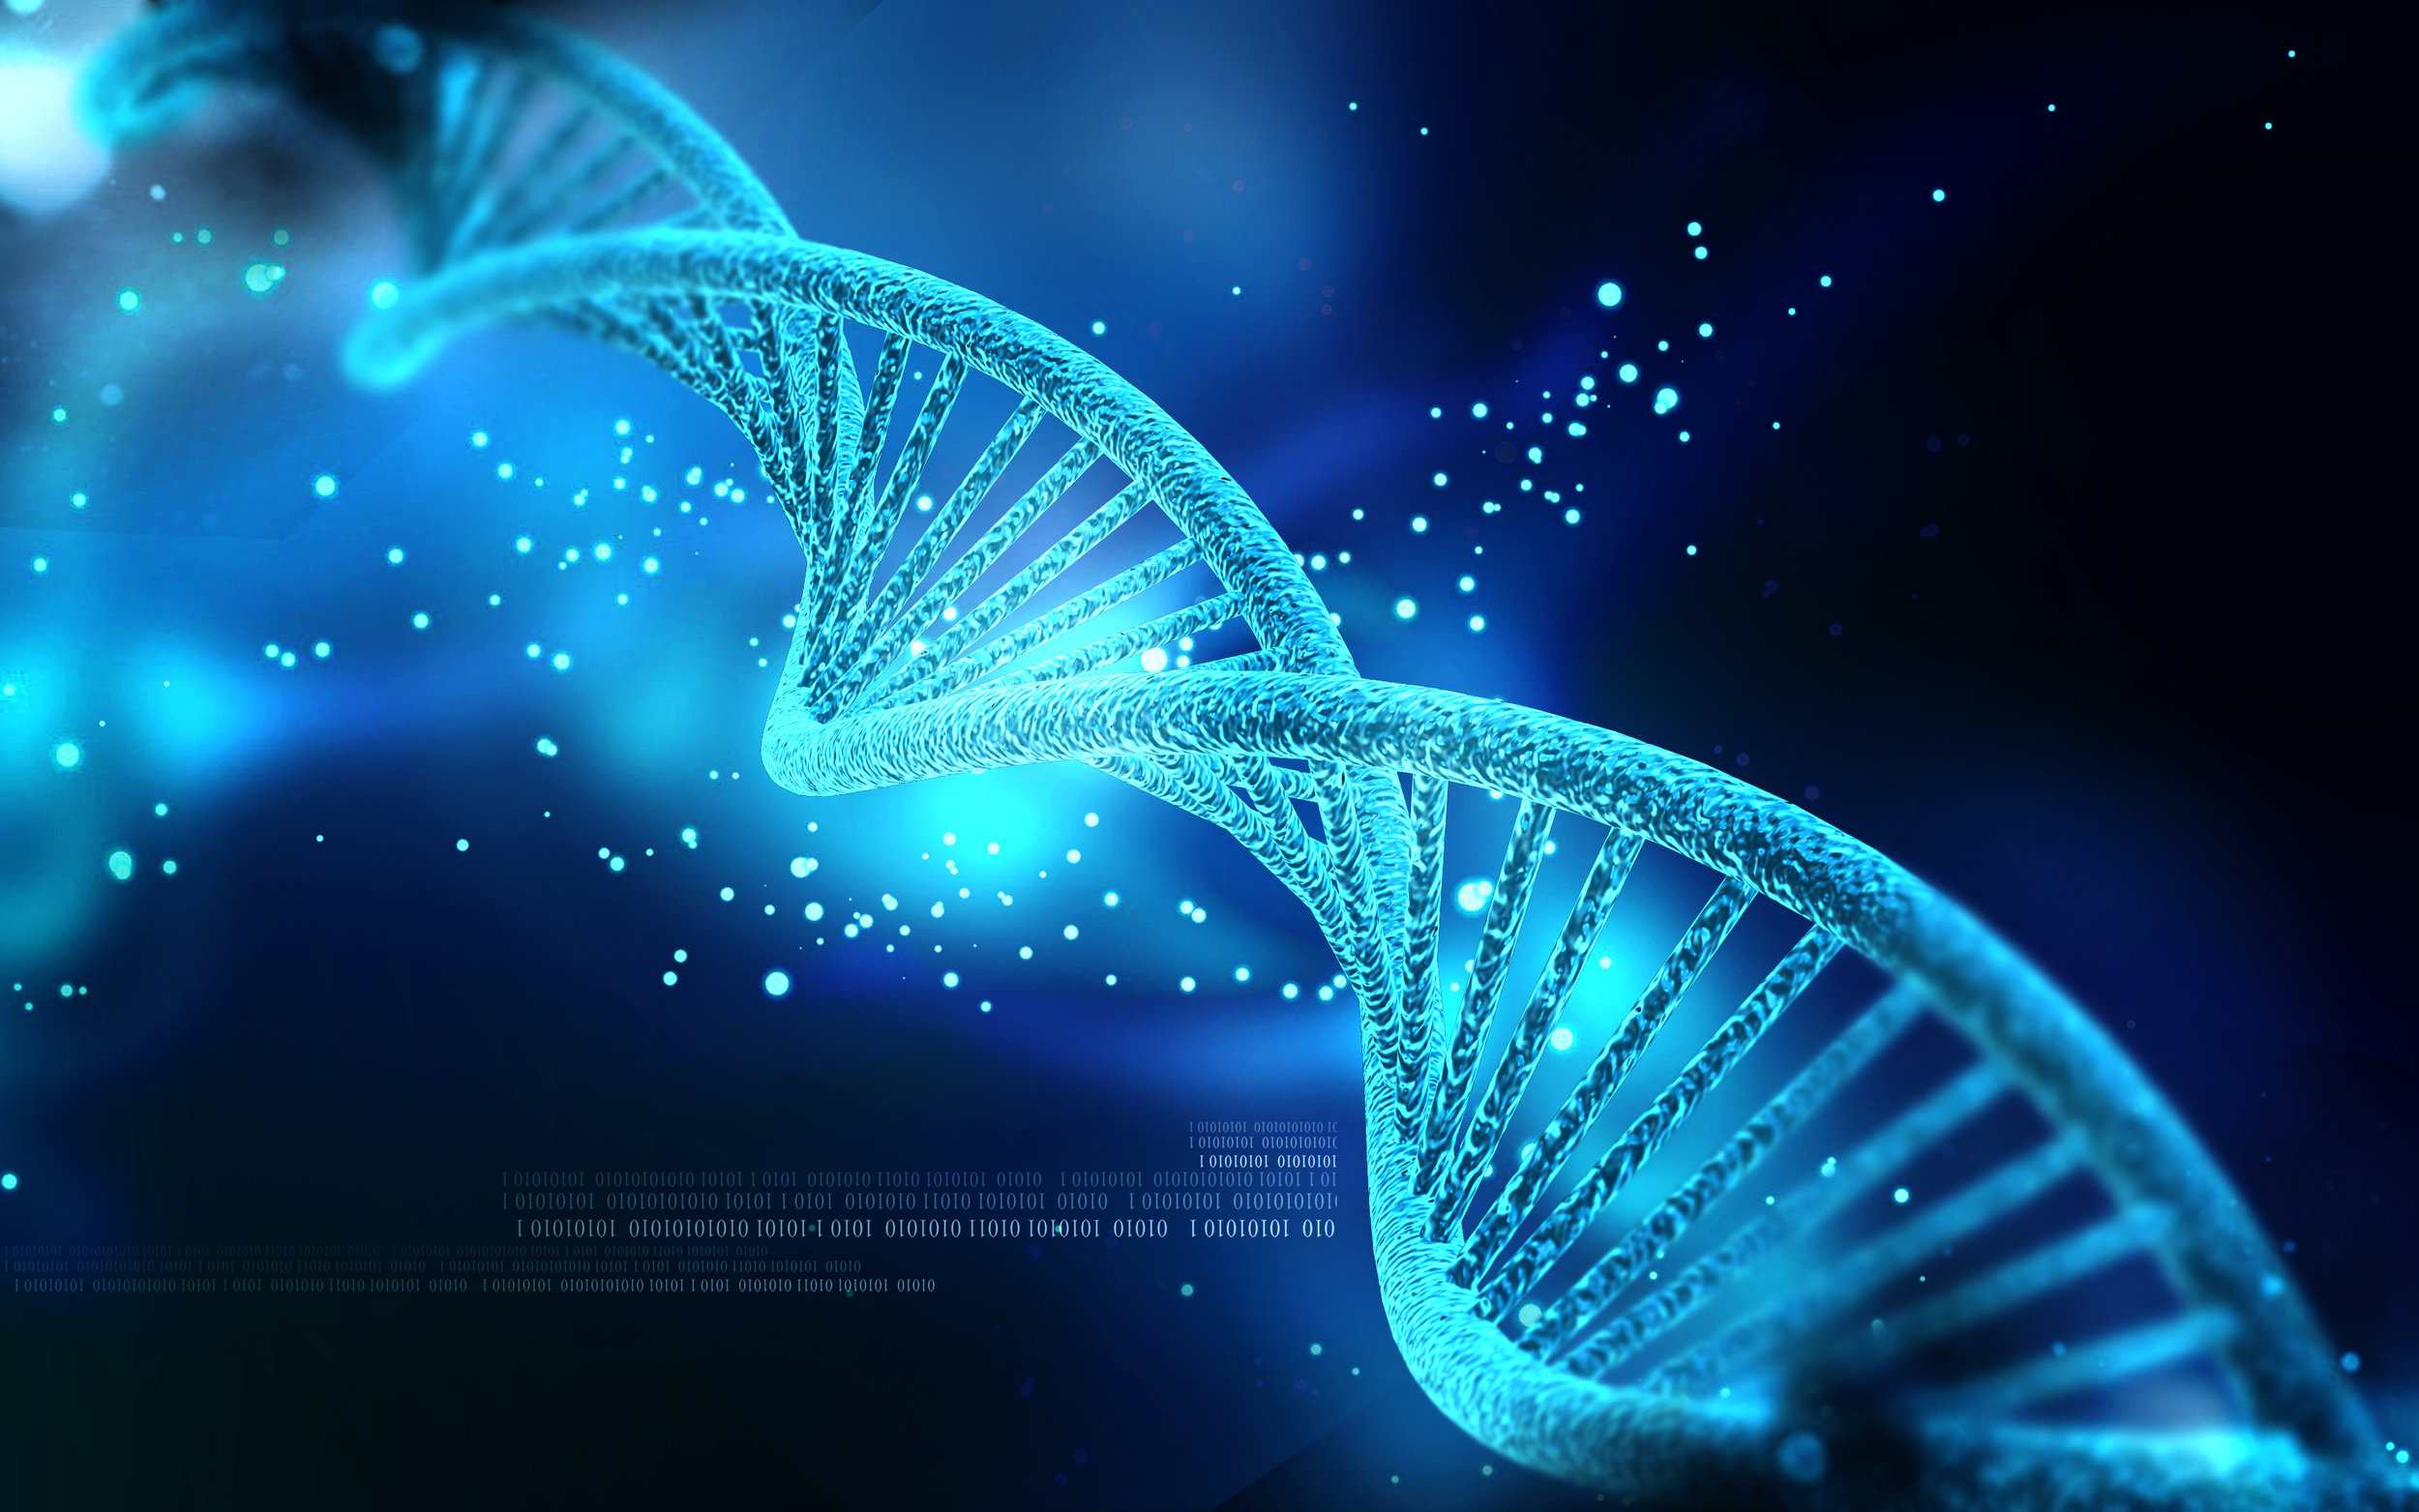 DNA connects every living thing on Earth